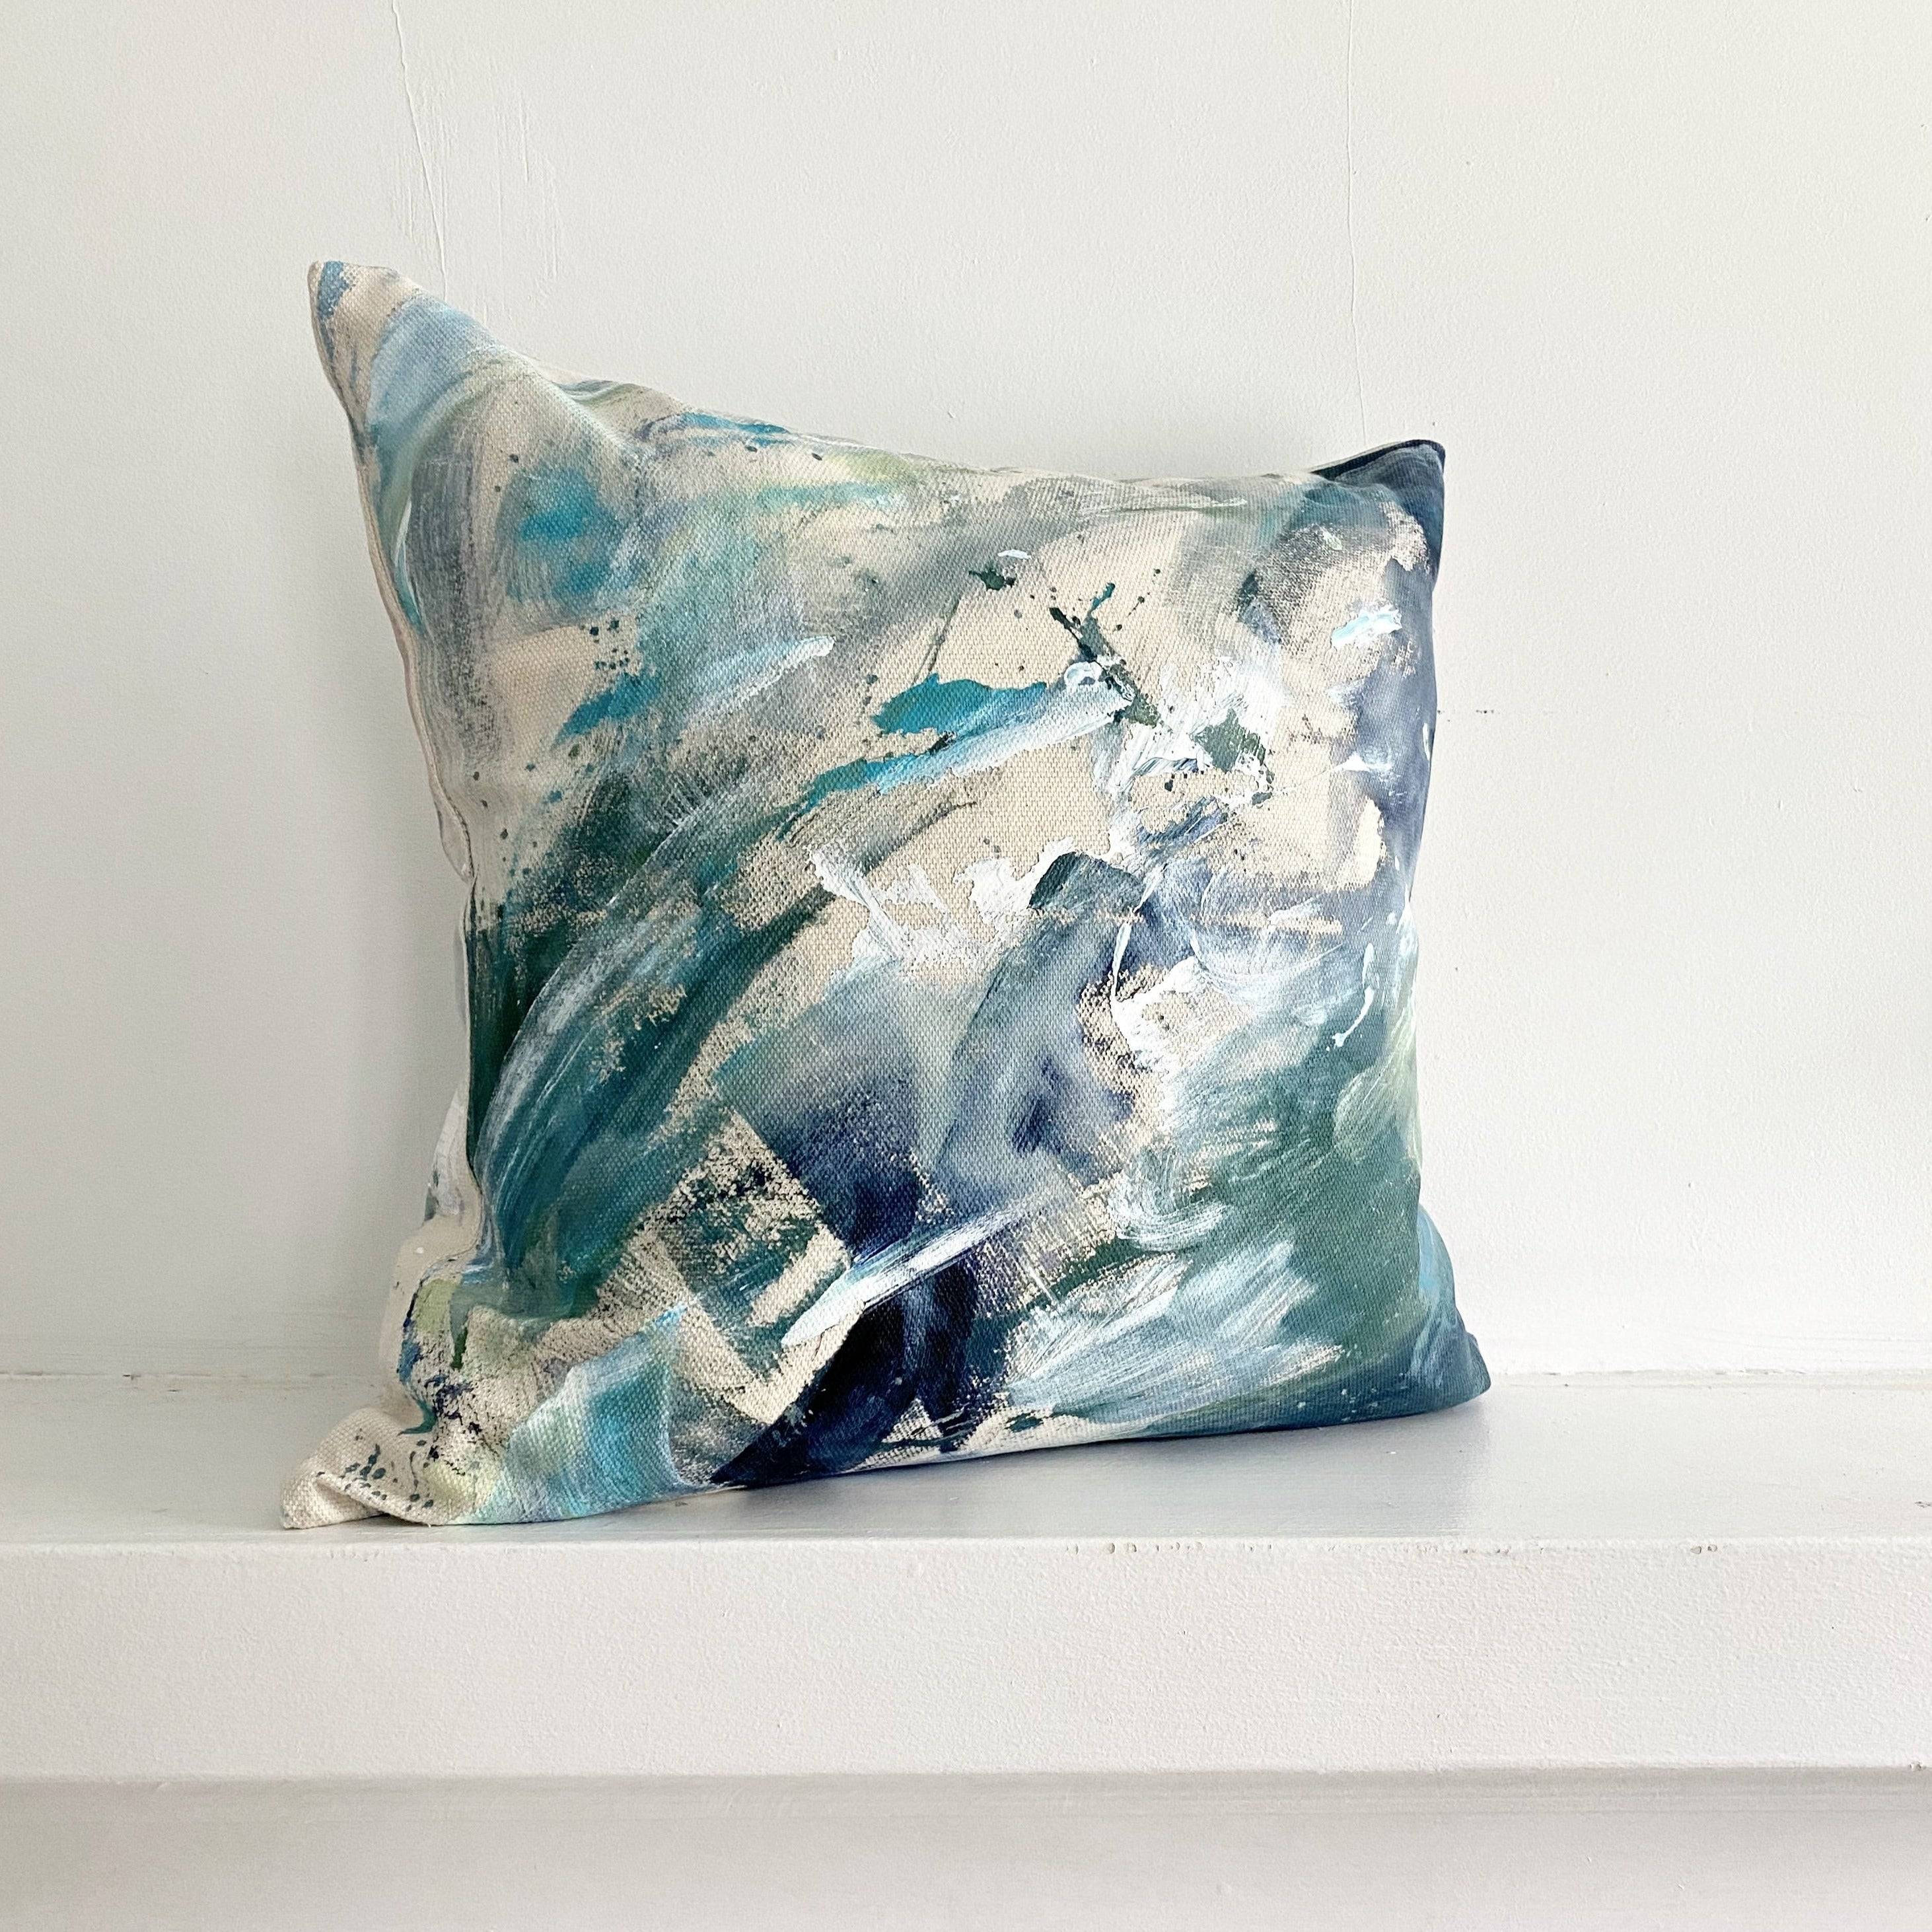 Painted Pillow 1